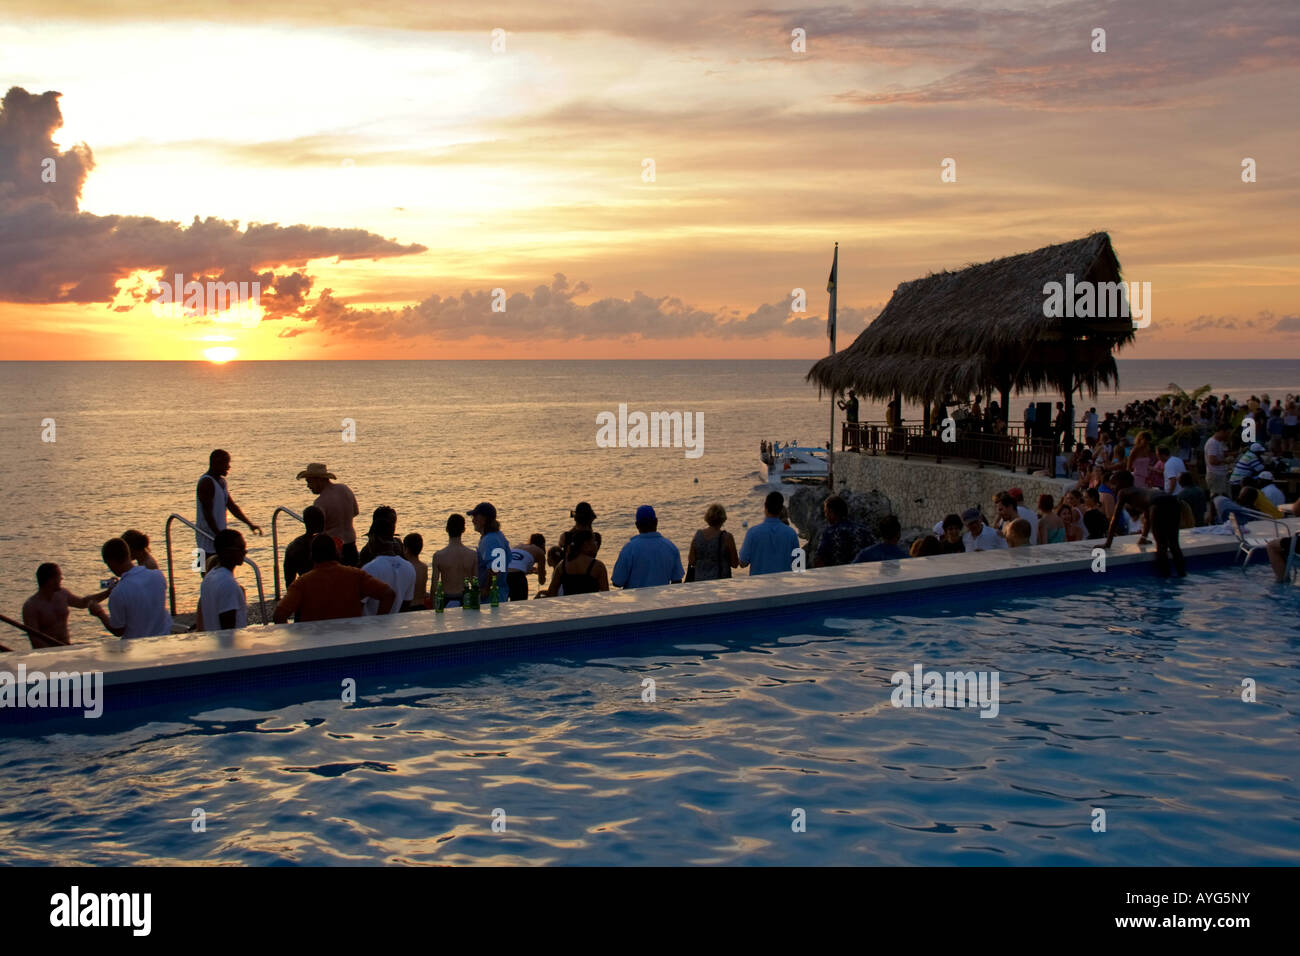 Jamaica Negril Rick s Cafe open air bar viewpoint at sunset Stock Photo